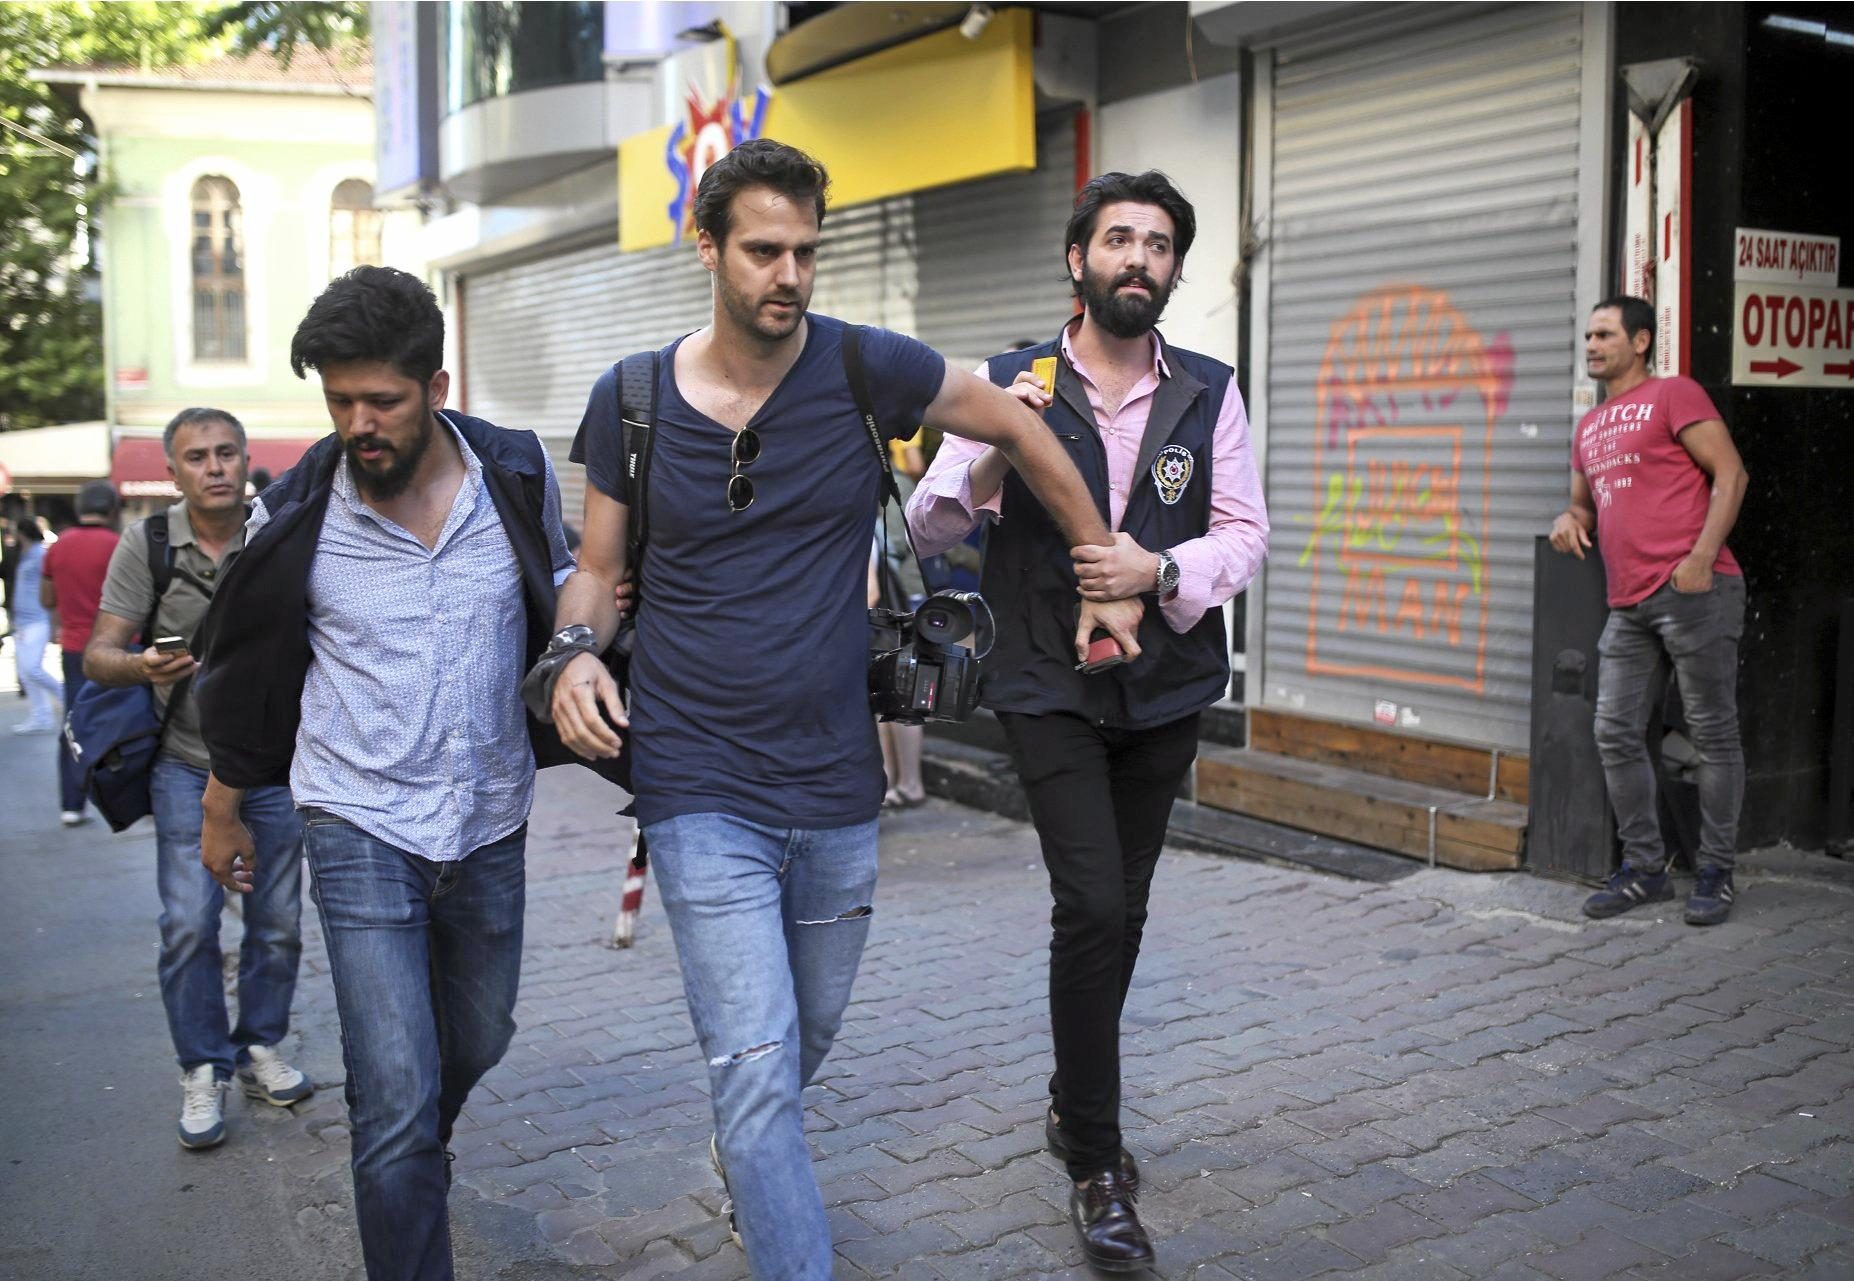 Turkish riot police detain Associated Press journalist Bram Janssen, stopping him from reporting on LGBT pride march in Istanbul.